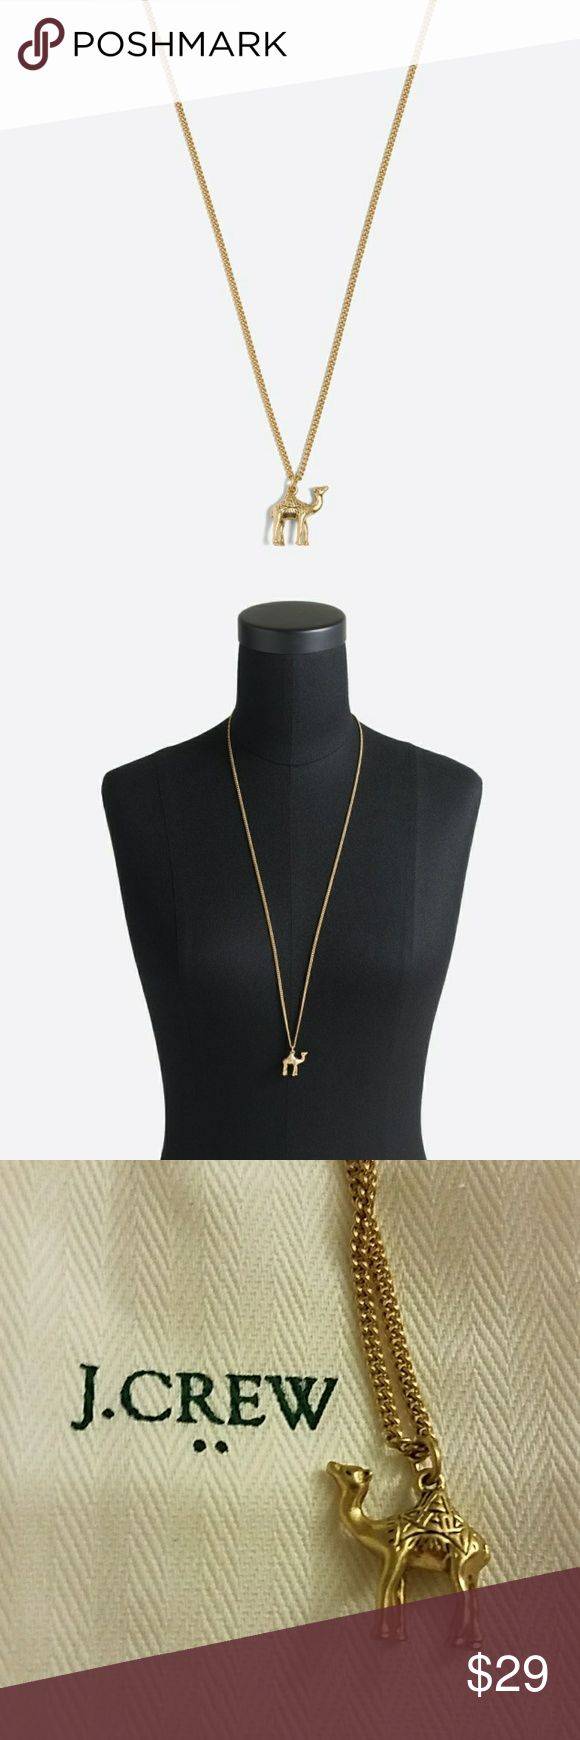 J. Crew Camel Pendant Necklace Brand new with tags and white dust bag J. Crew Jewelry Necklaces